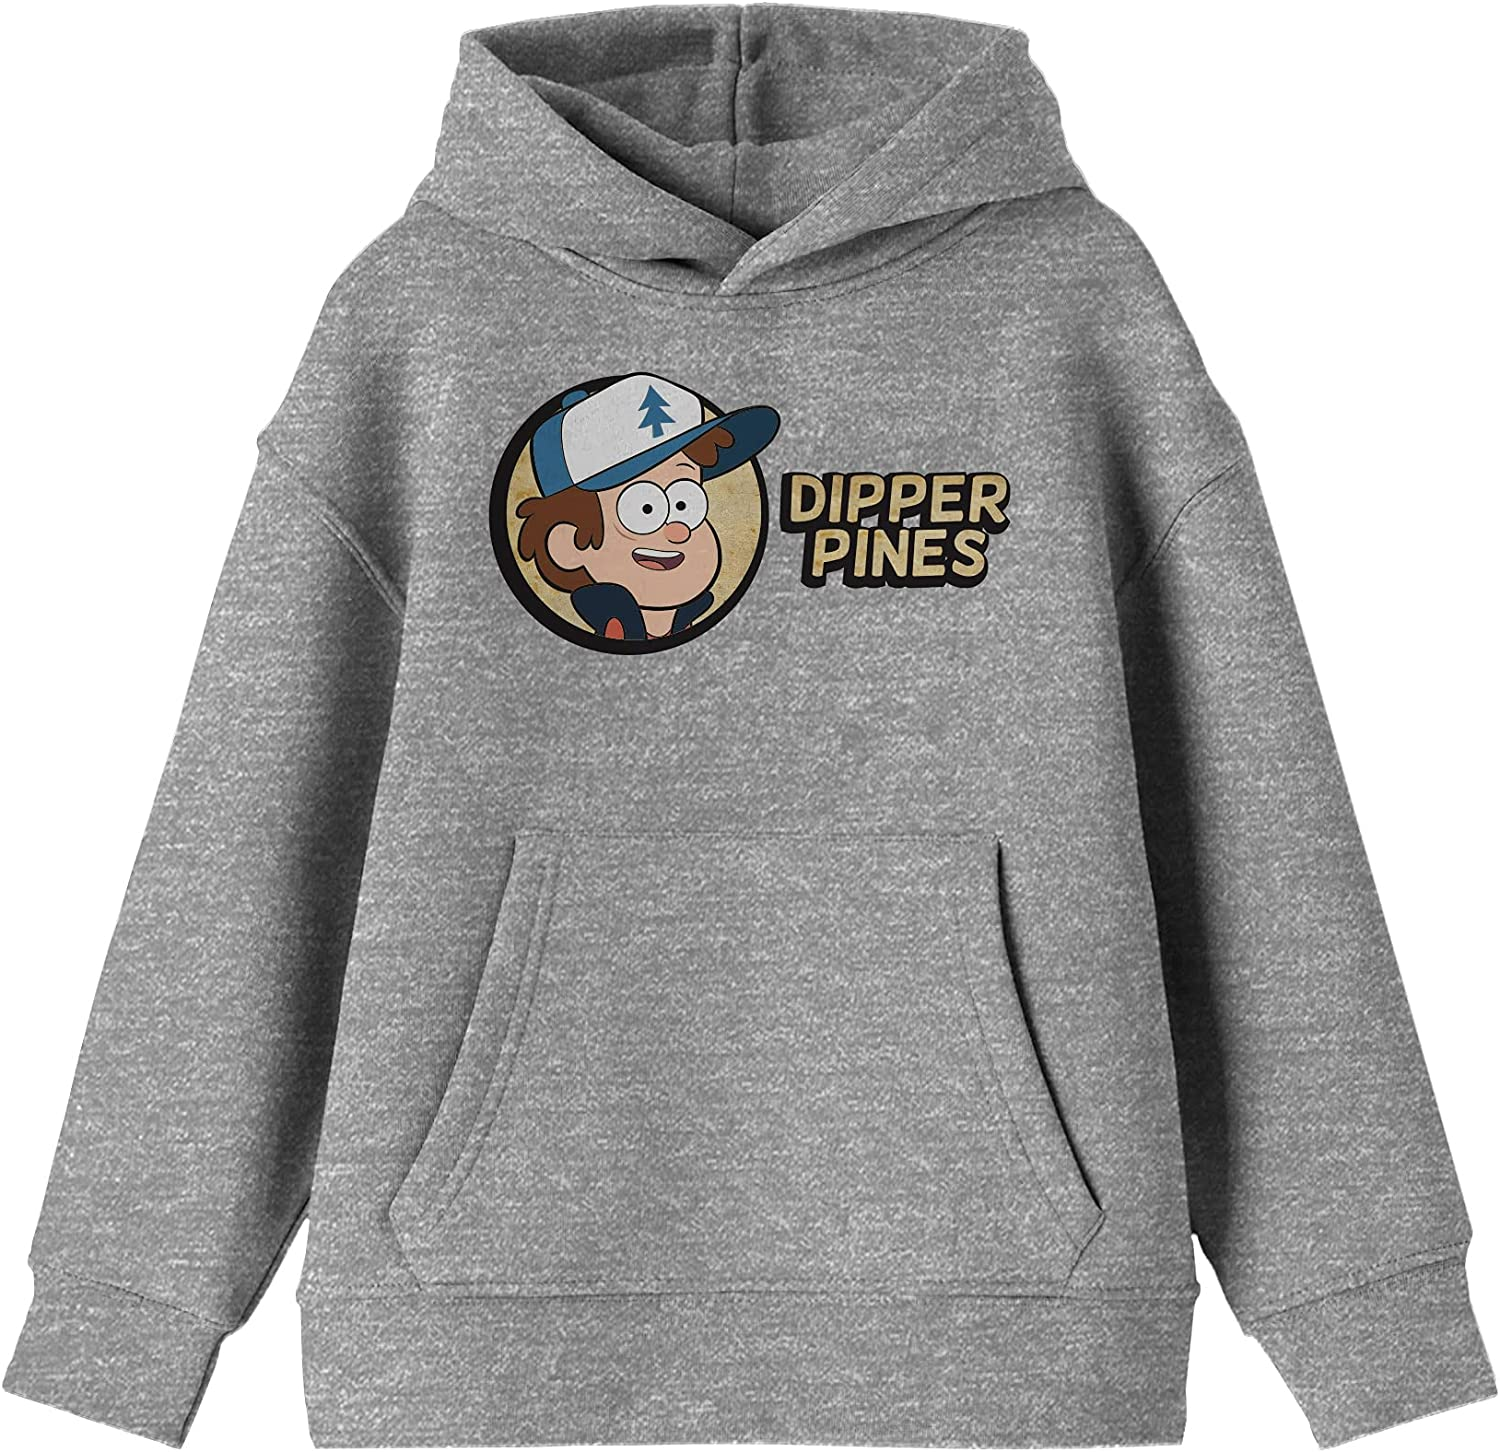 Youth Boys Gravity Falls All items free shipping Cartoon Pines Sale SALE% OFF Character Heather Dipper